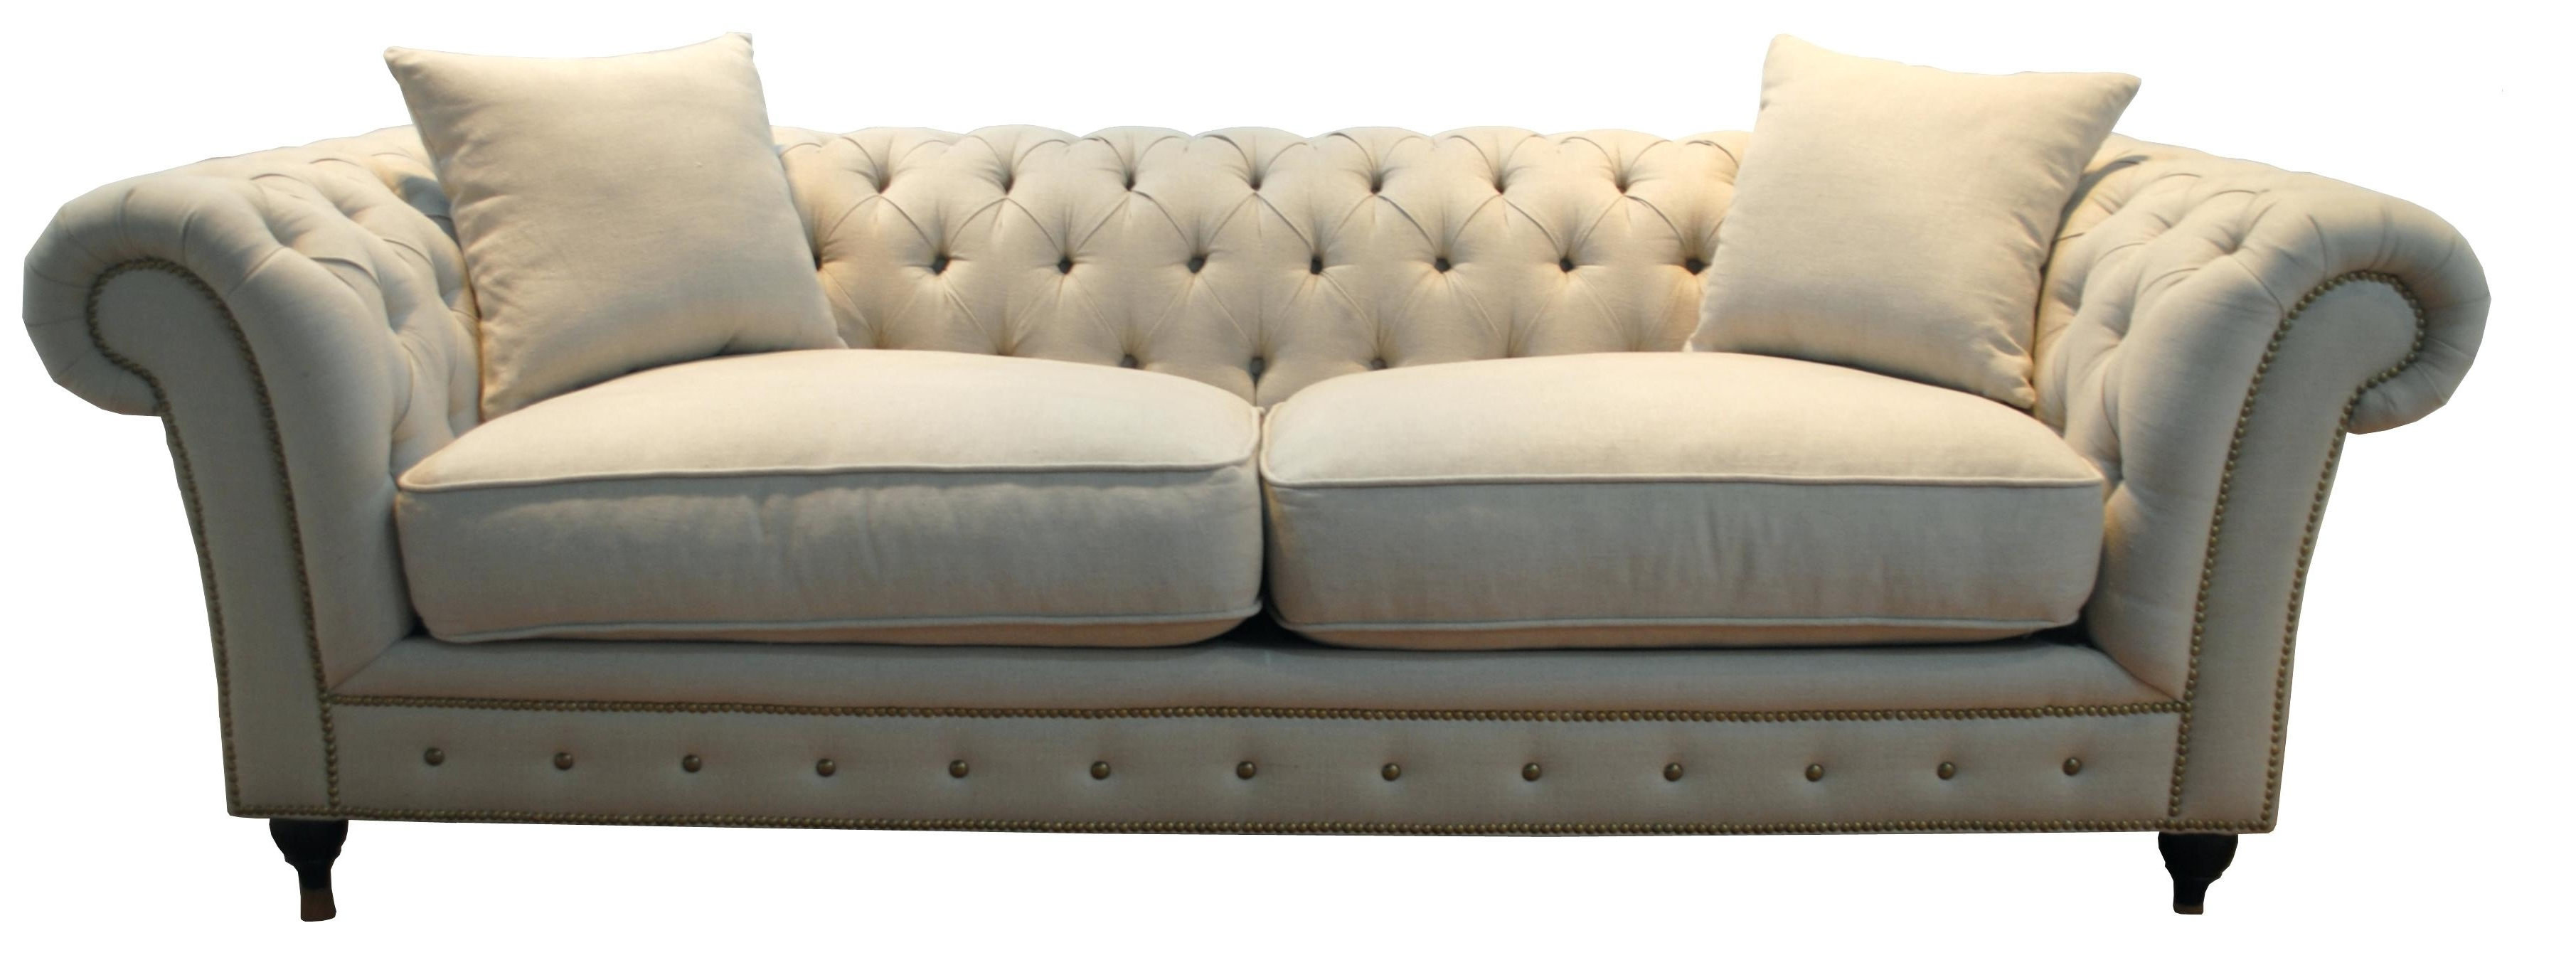 Trendy French Style Sofas In Decoration: French Style Couch Full Size Of Moving Sofa Problem (View 13 of 15)